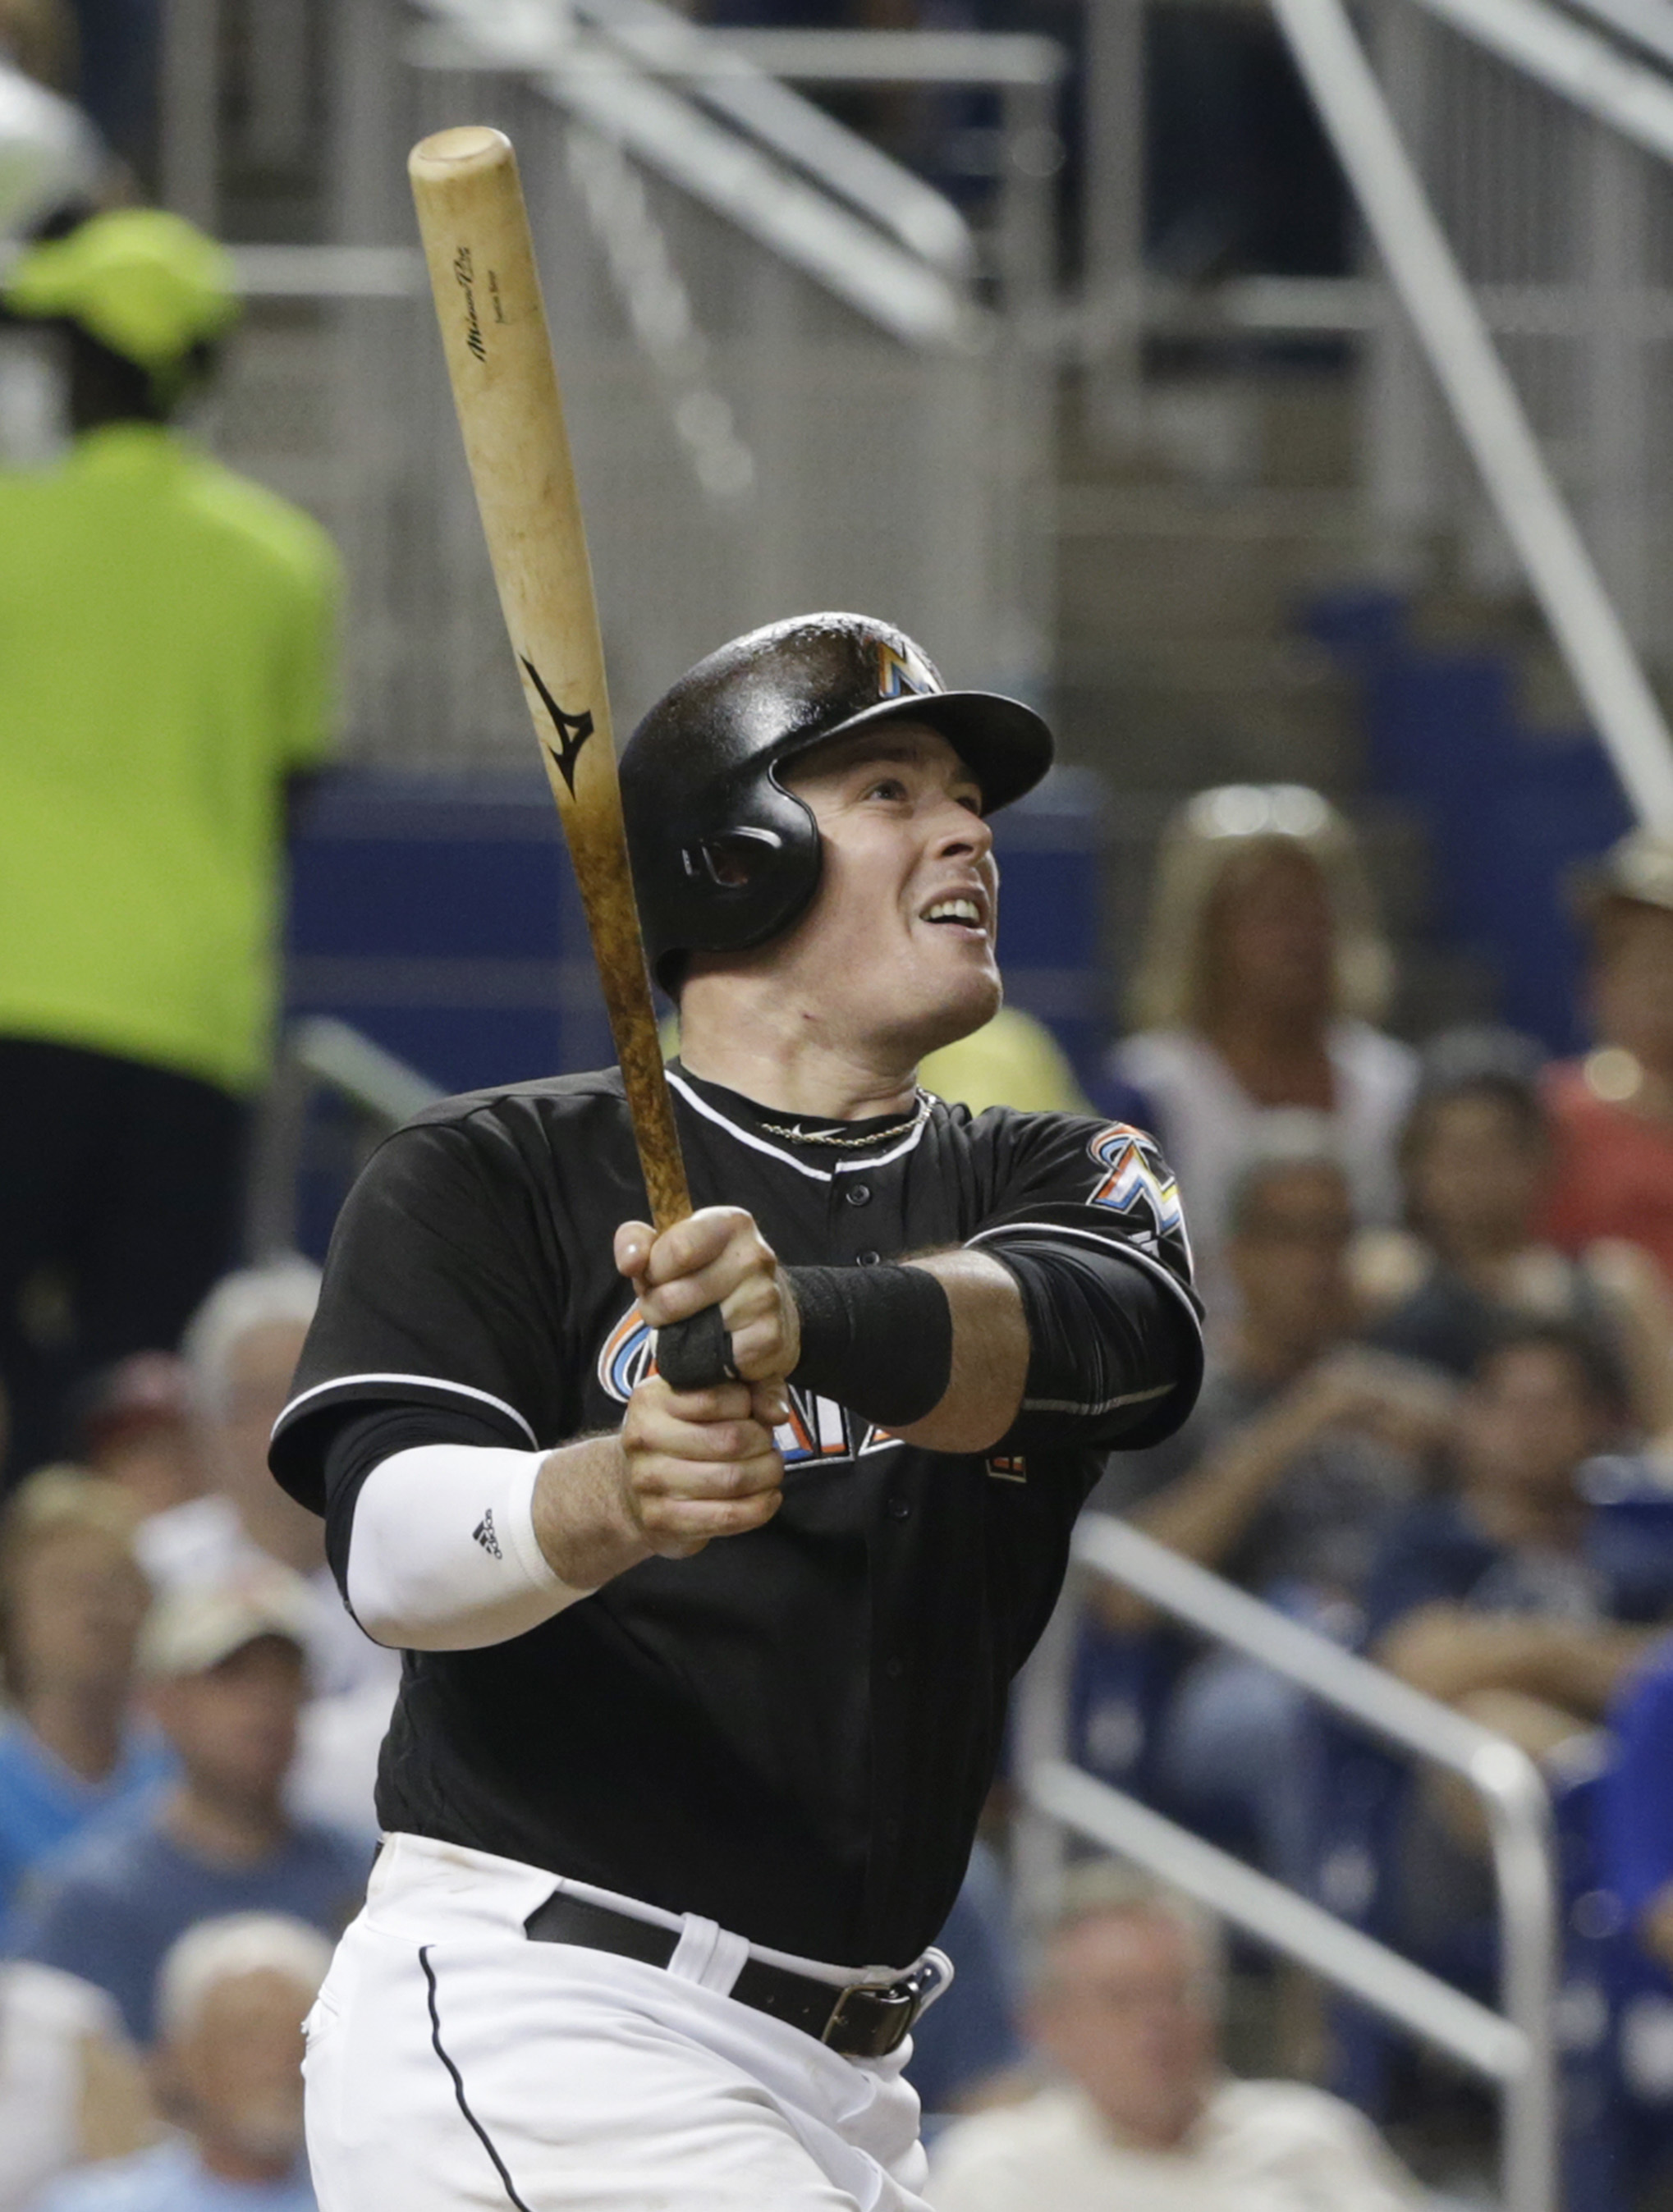 Miami Marlins' Justin Bour watches  after hitting a two-run home run hitting in Marcell Ozuna during the sixth inning of a baseball game against the Washington Nationals, Saturday, May 21, 2016, in Miami. (AP Photo/Wilfredo Lee)